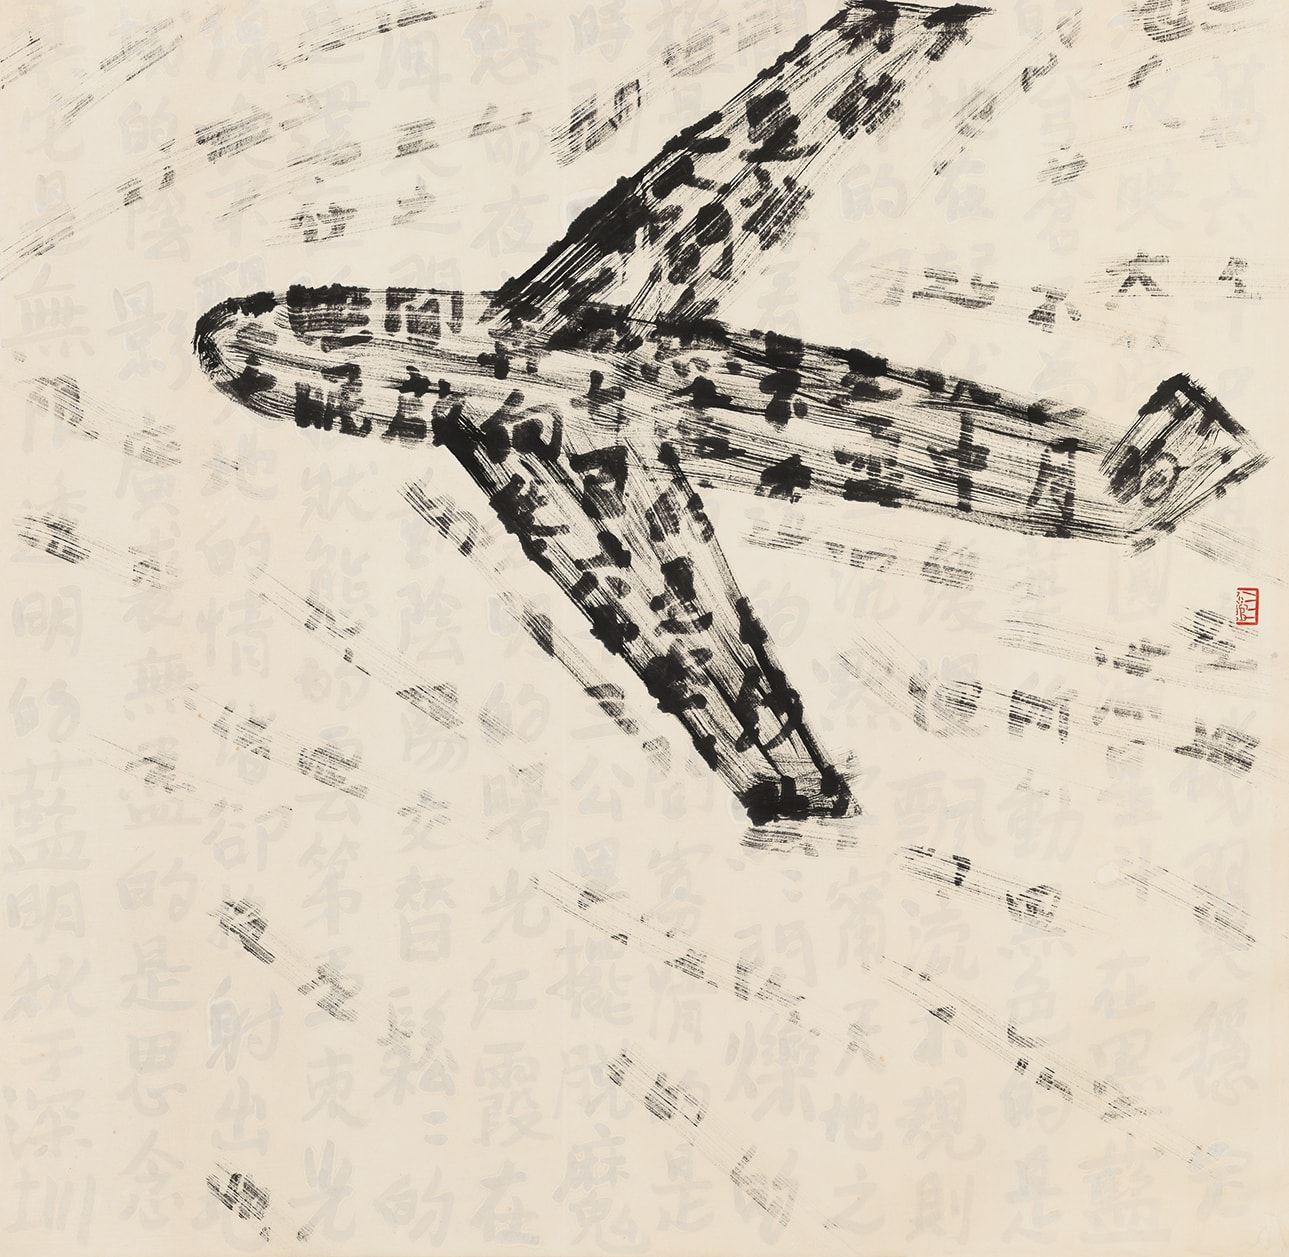 Fung Ming Chip 馮明秋, Sand Script, Departure 飛機沙字, 2015